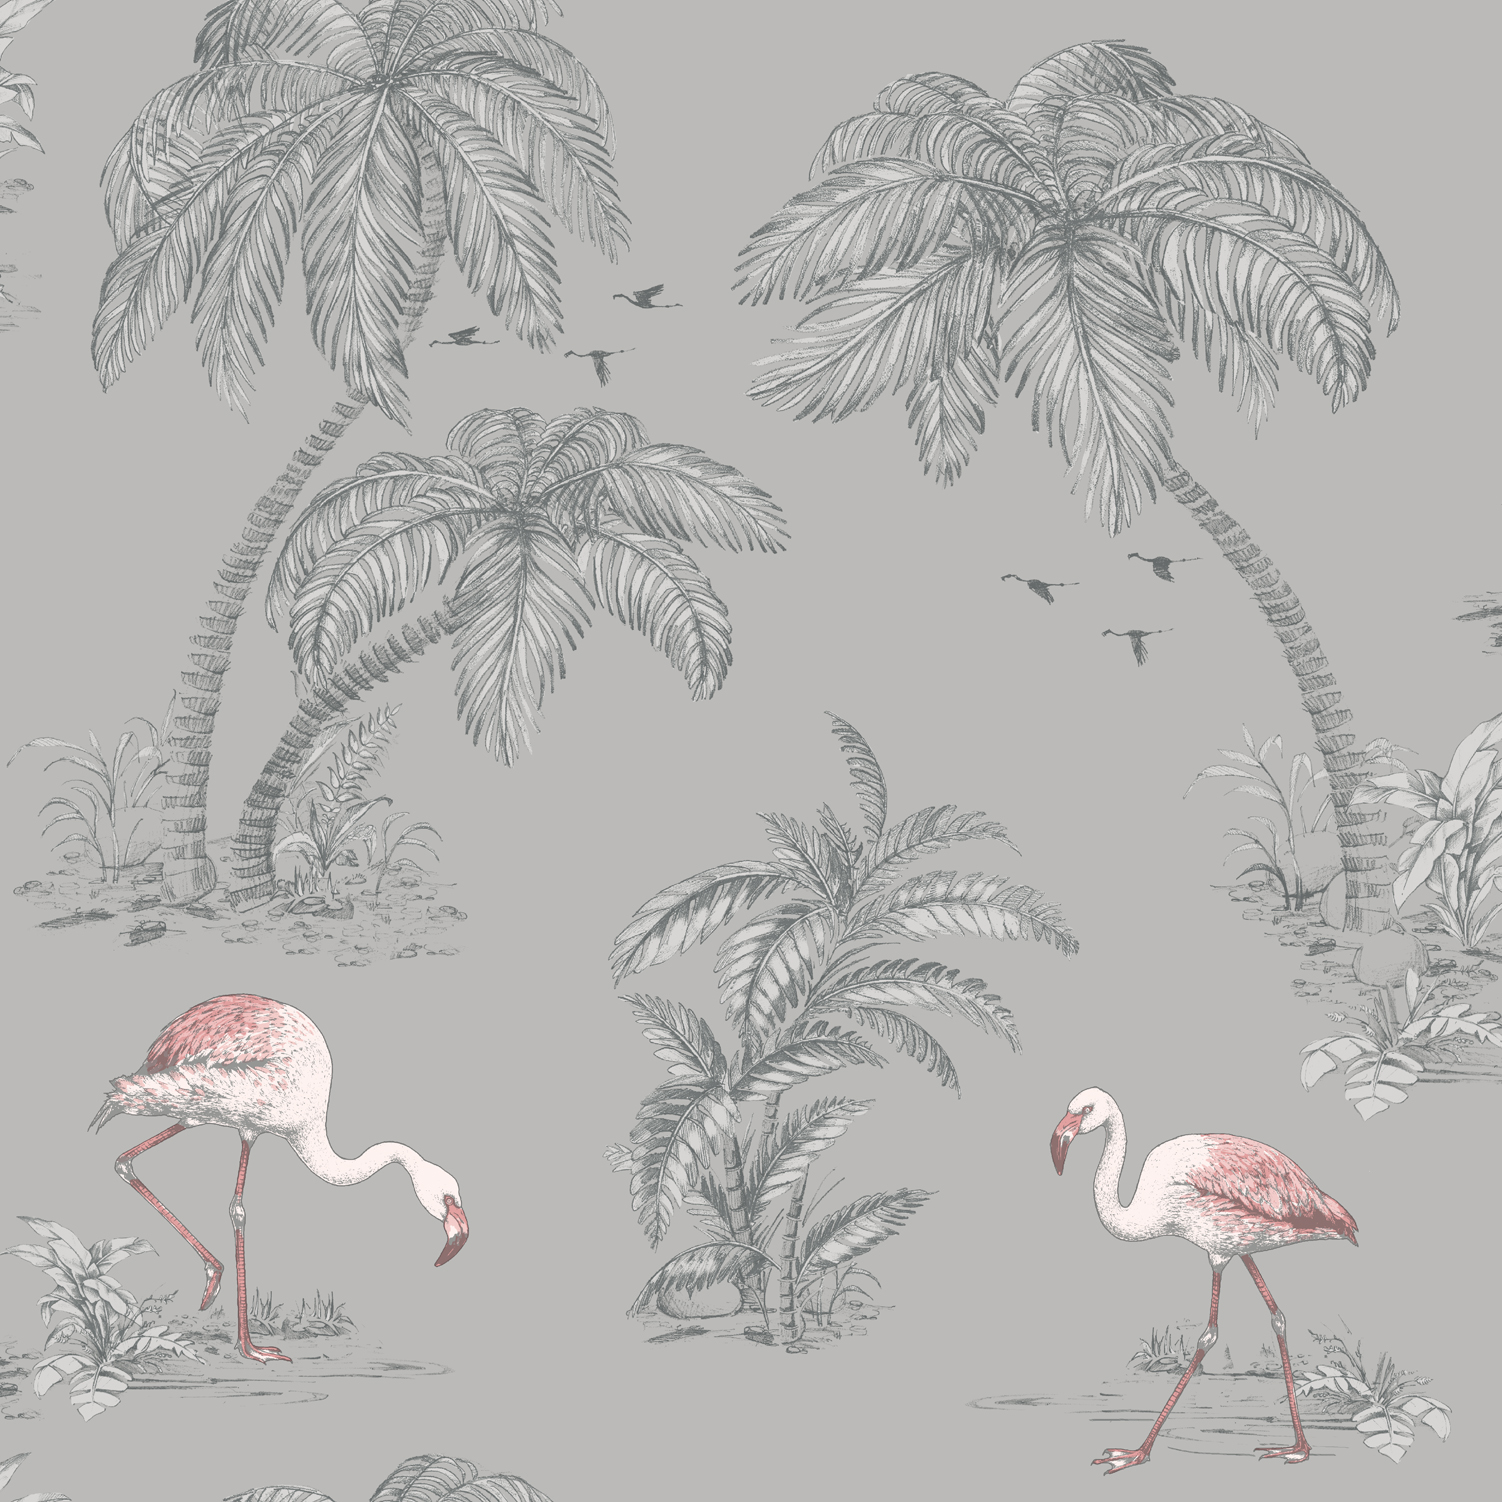 Tapetti Imaginarium 12381 Flamingo Grey 0,53x10,05 m monivärinen paperitapetti